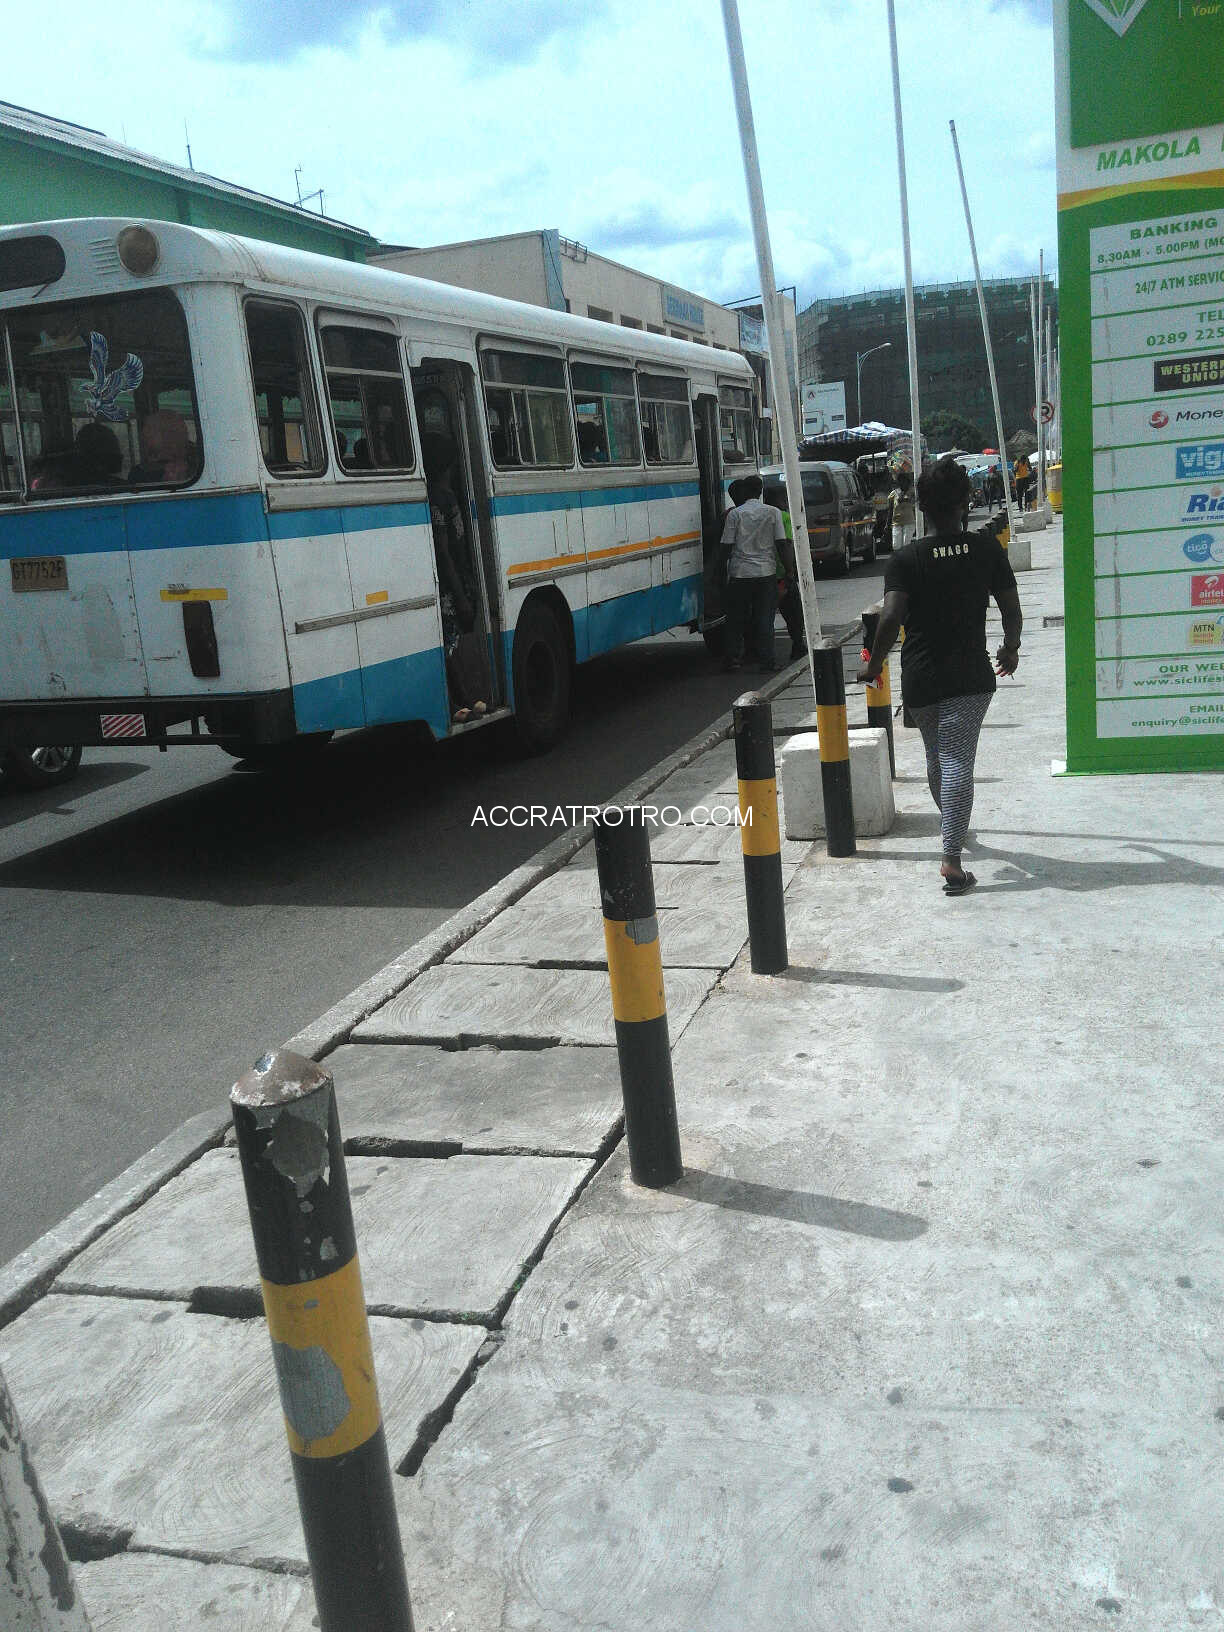 New Accra trotro station at Ayigbe town junction